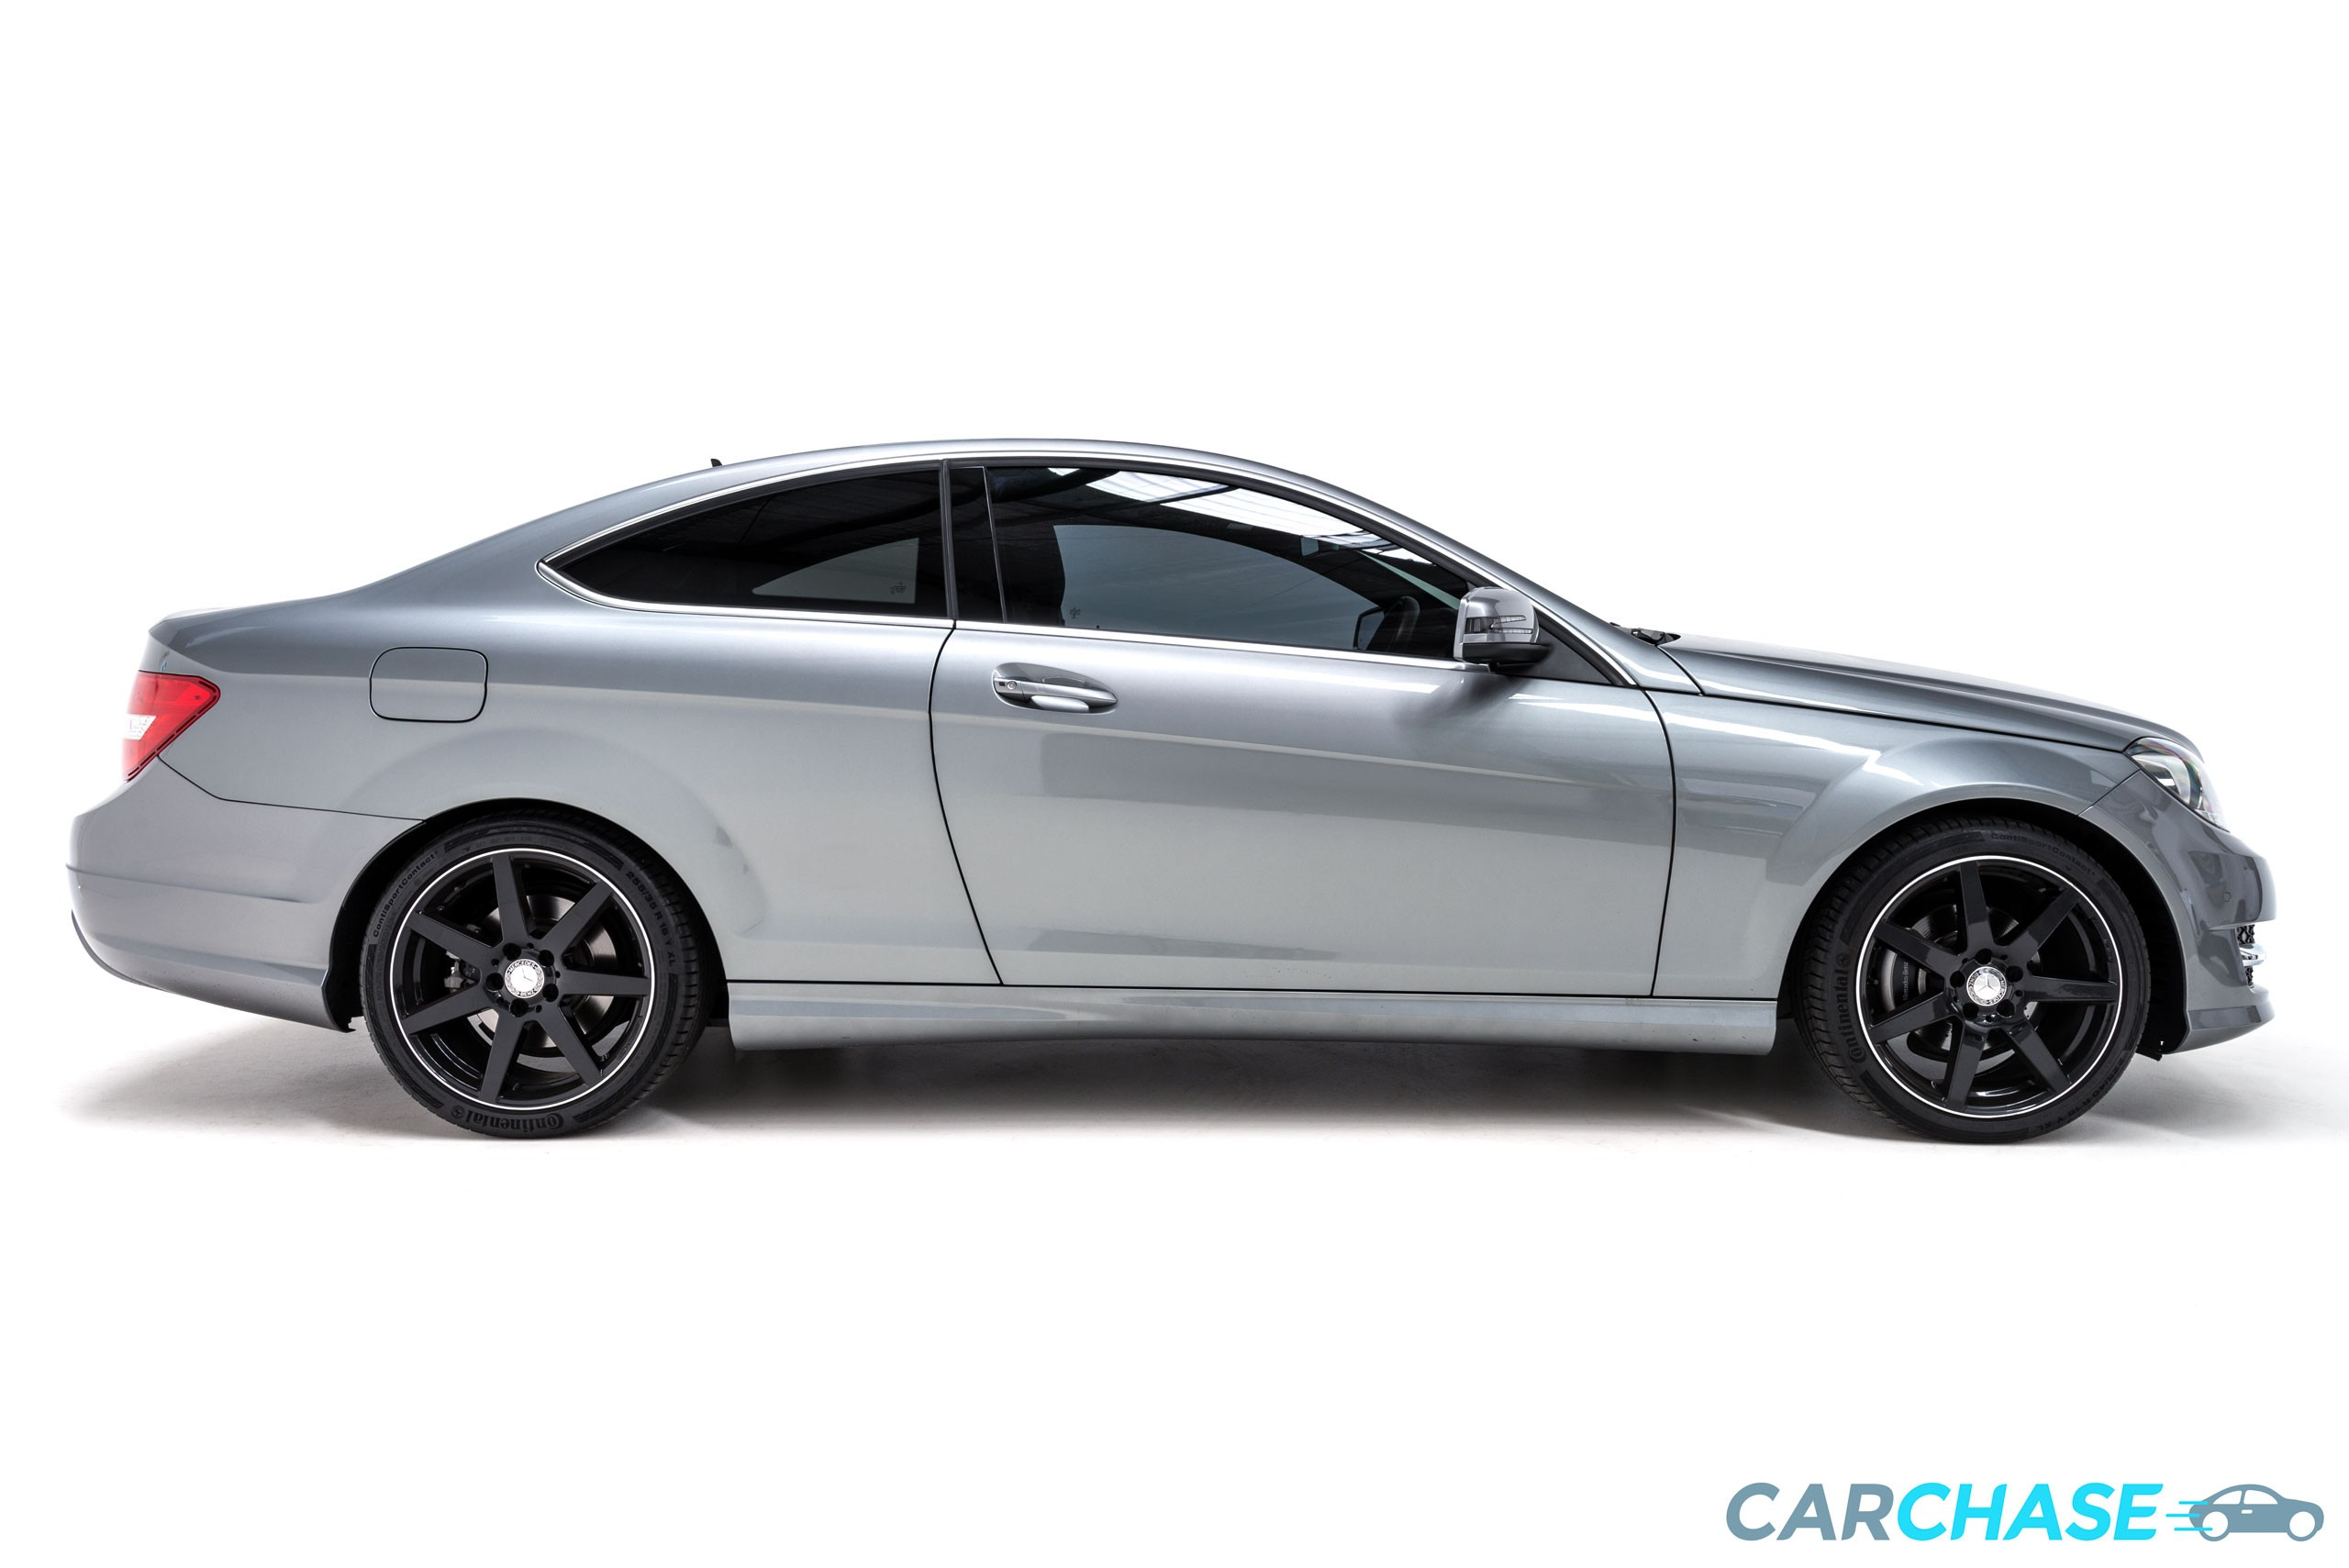 Image of right profile of 2015 Mercedes-Benz C250 CDi Avantgarde